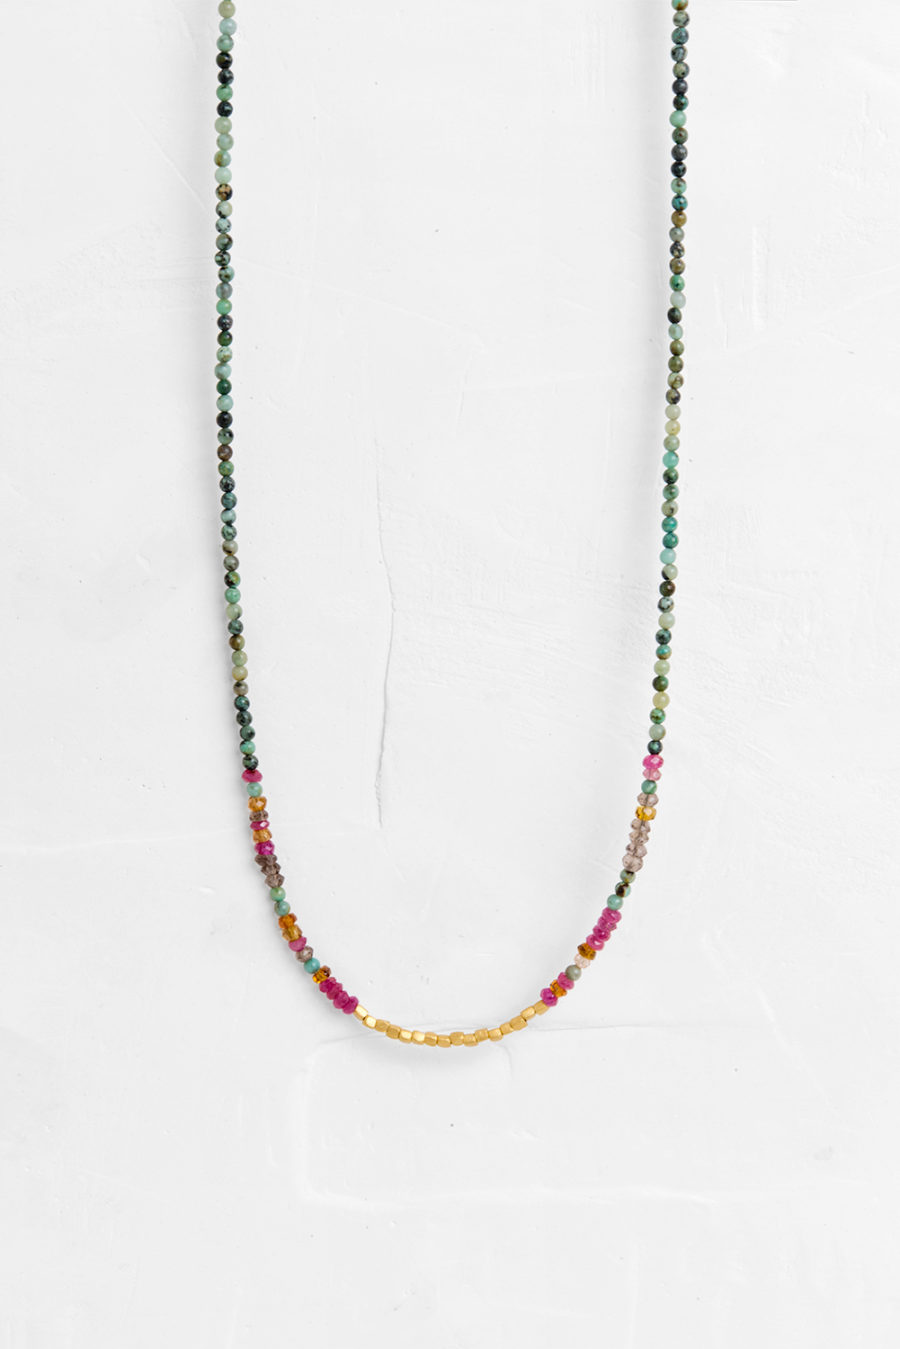 pinkpowder sunburst com delicate charm pearl long necklace